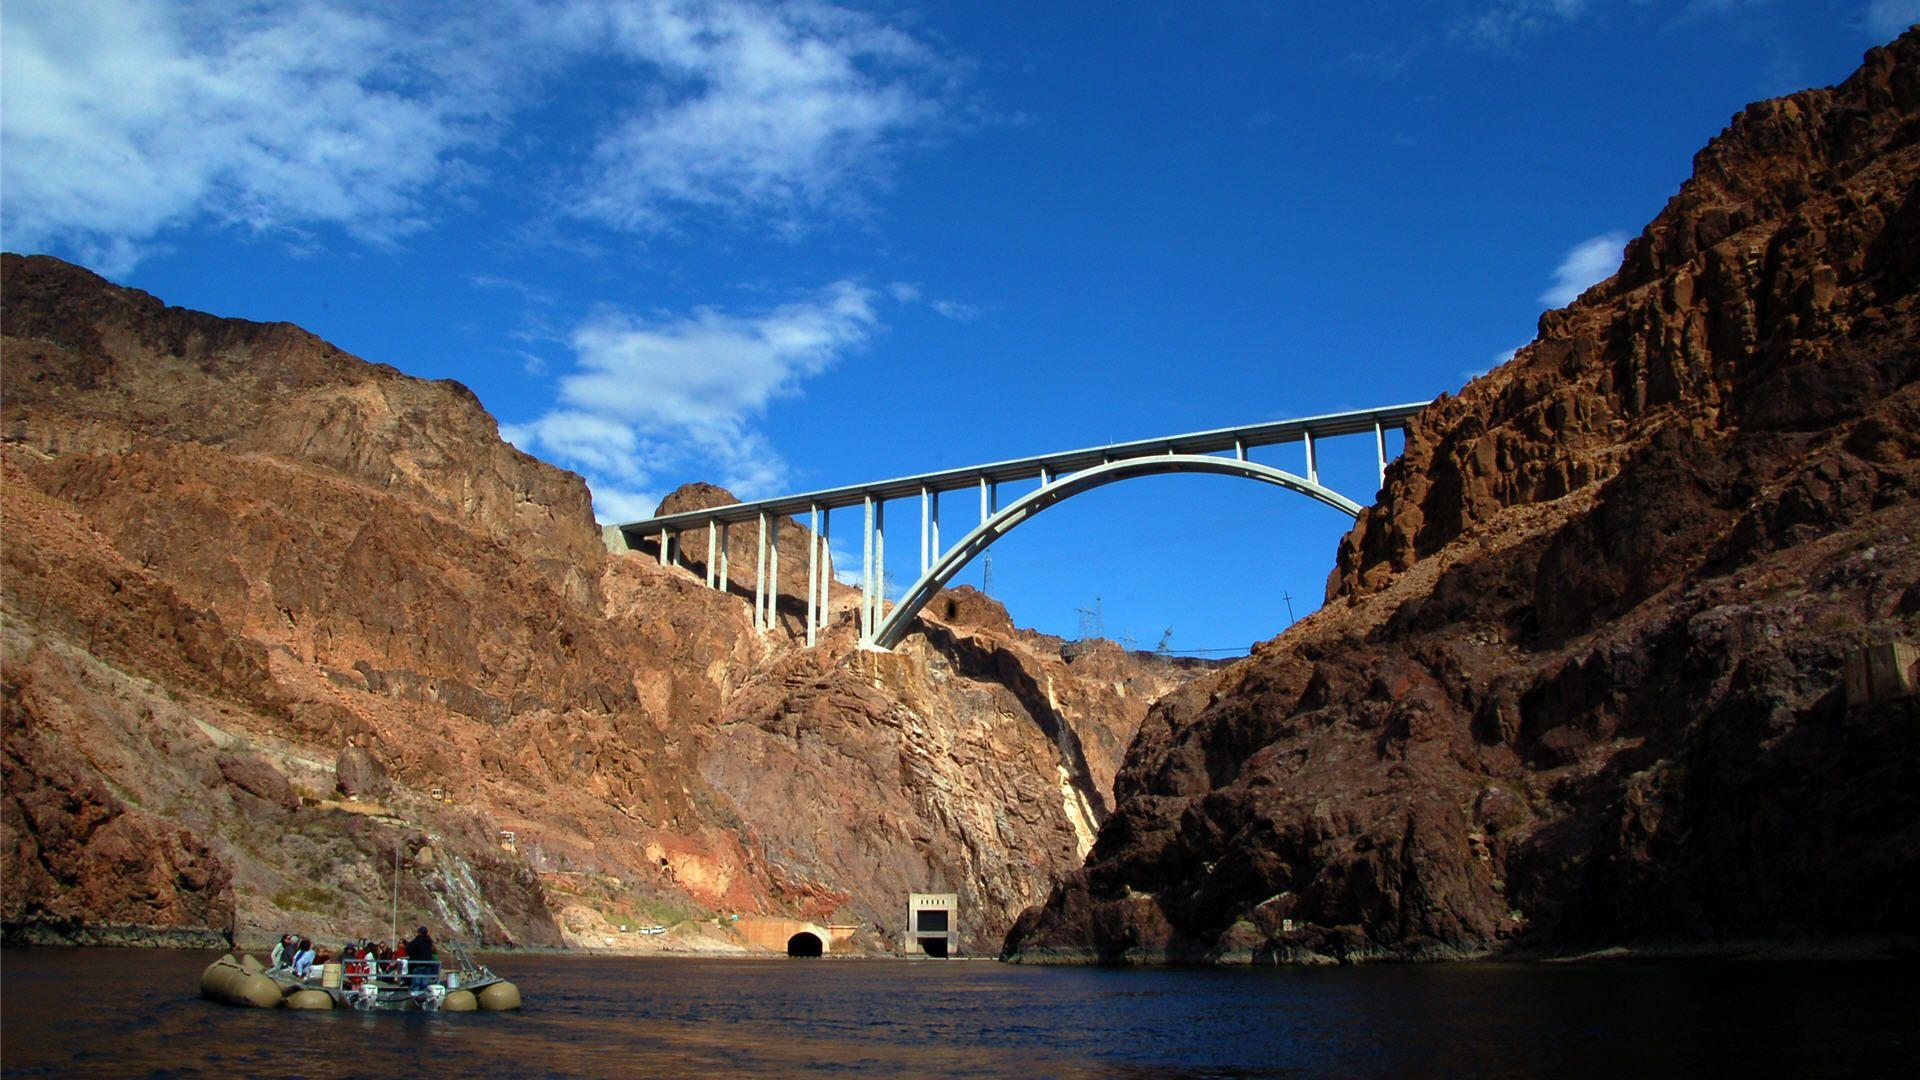 Hoover dam bypass bridge Full HD Wallpapers and Backgrounds